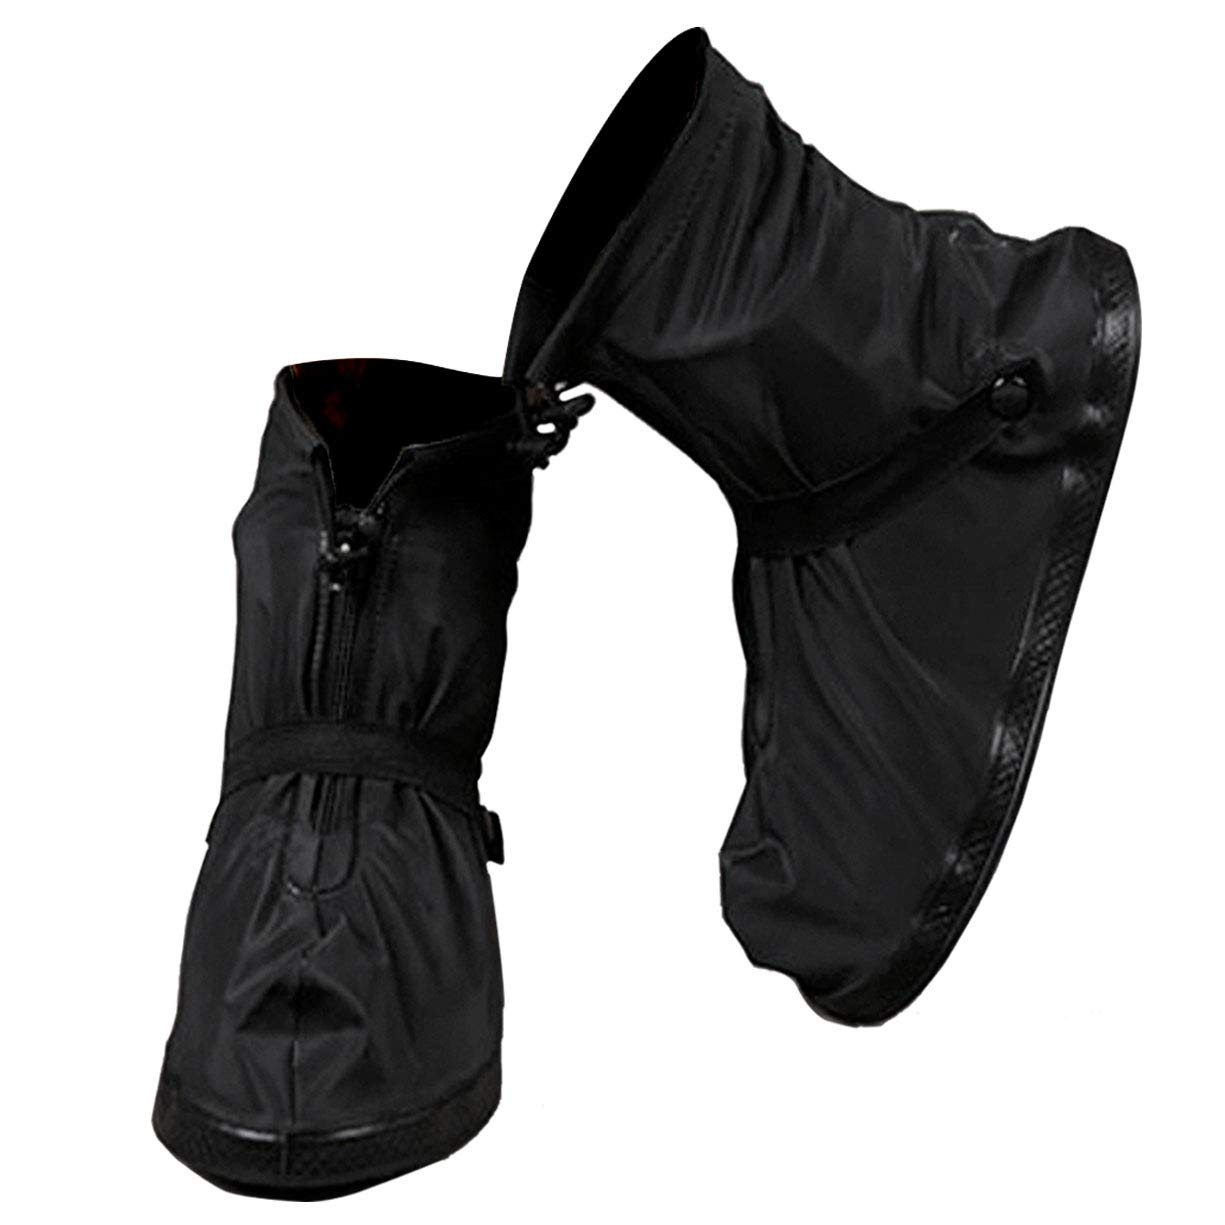 VXAR Rain Shoes Covers Snow Boots Waterproof Overshoes Women Men (Black 4XL)